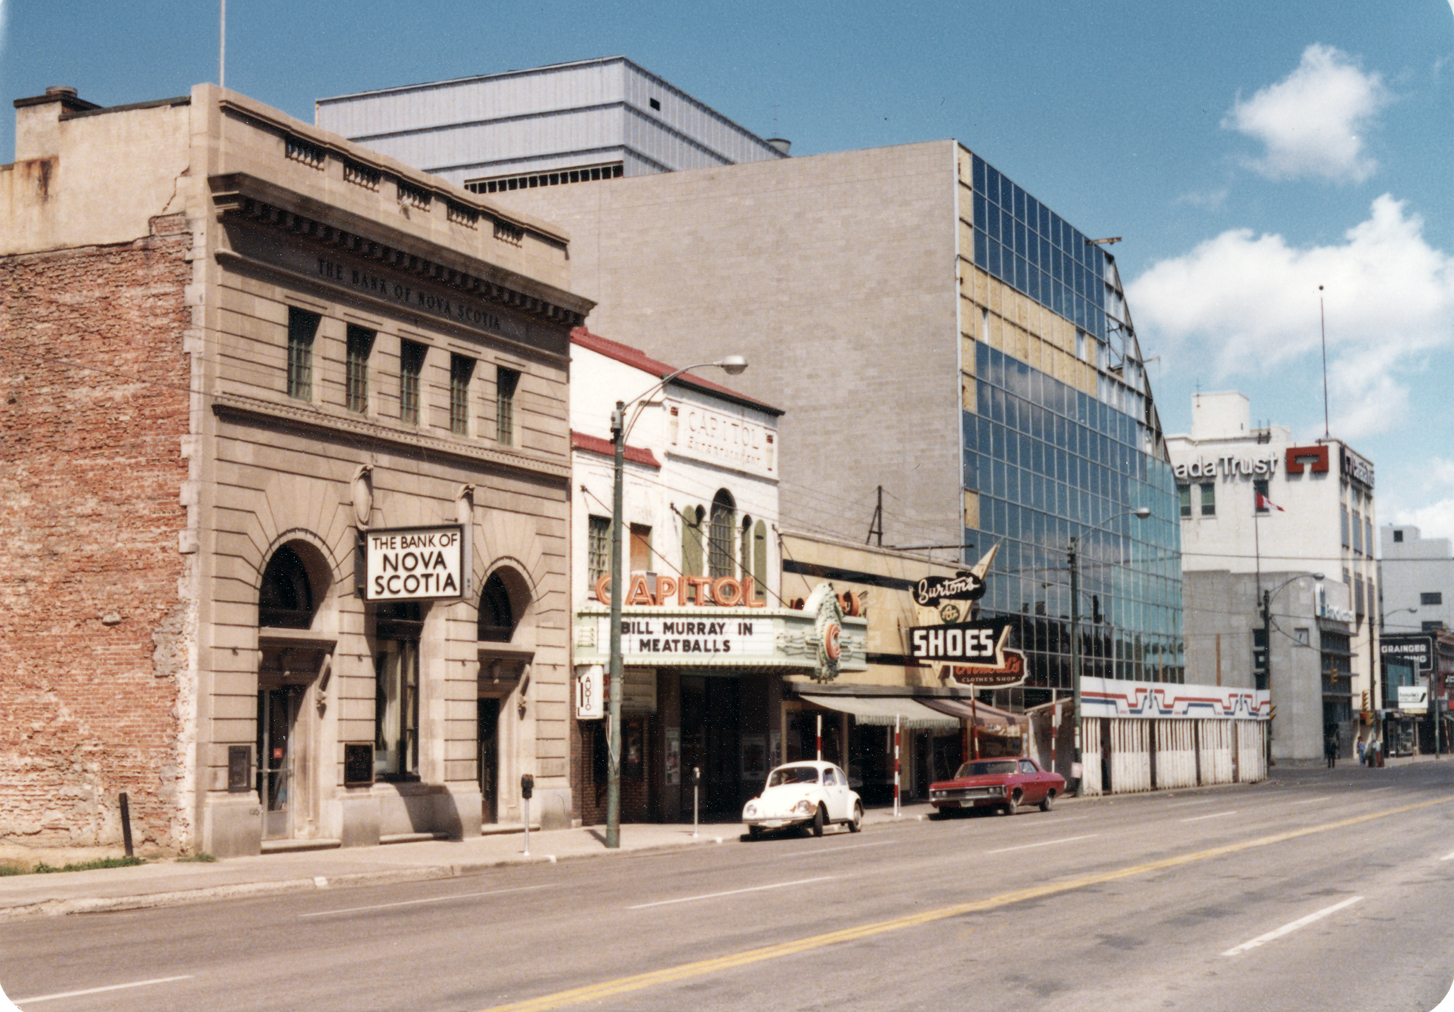 The front facade of the Bank of Nova Scotia, seen here shortly before the demolition, survives today. You can find it inside the Scotia Centre, facing the indoor patio at 2nd Avenue Grill. (Saskatoon Public Library Local History Room; item ph-2001-31-41)